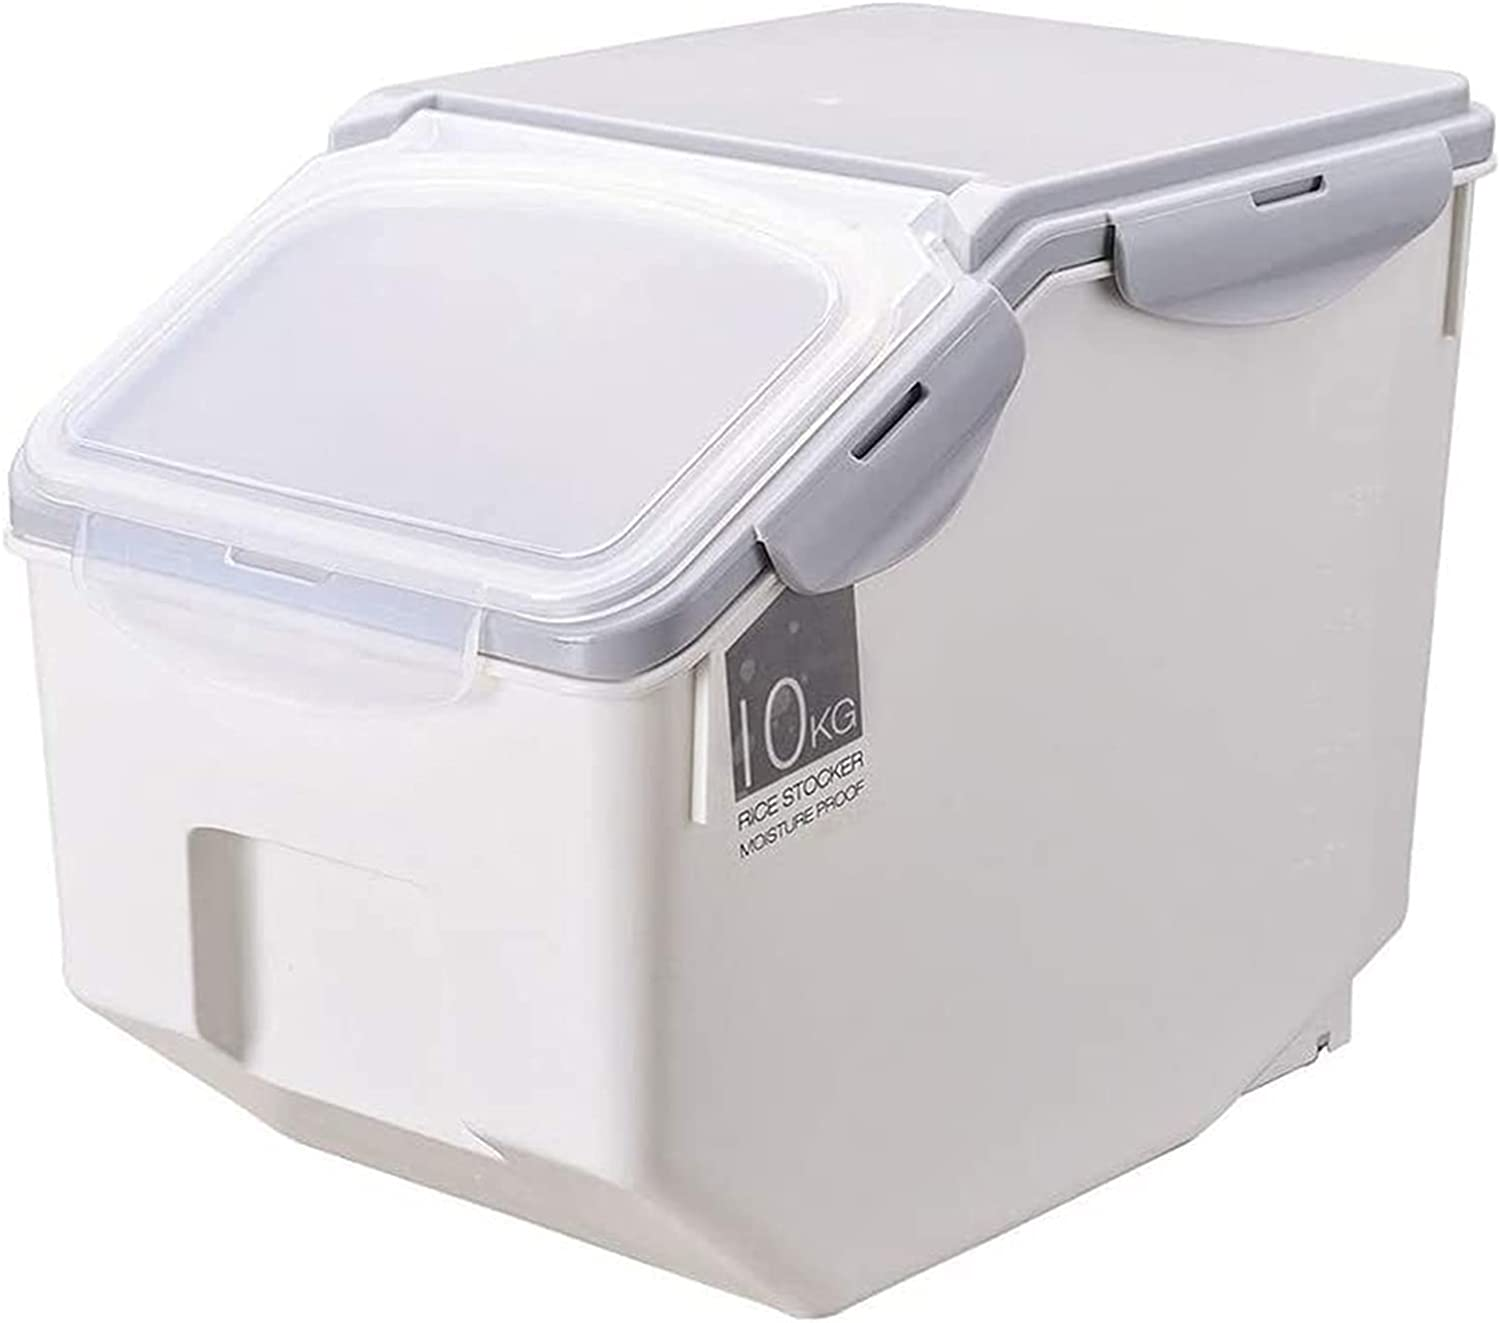 Containers for Max 64% OFF food Rice Bucket Bargain sale Storage Sealed Box Plastic